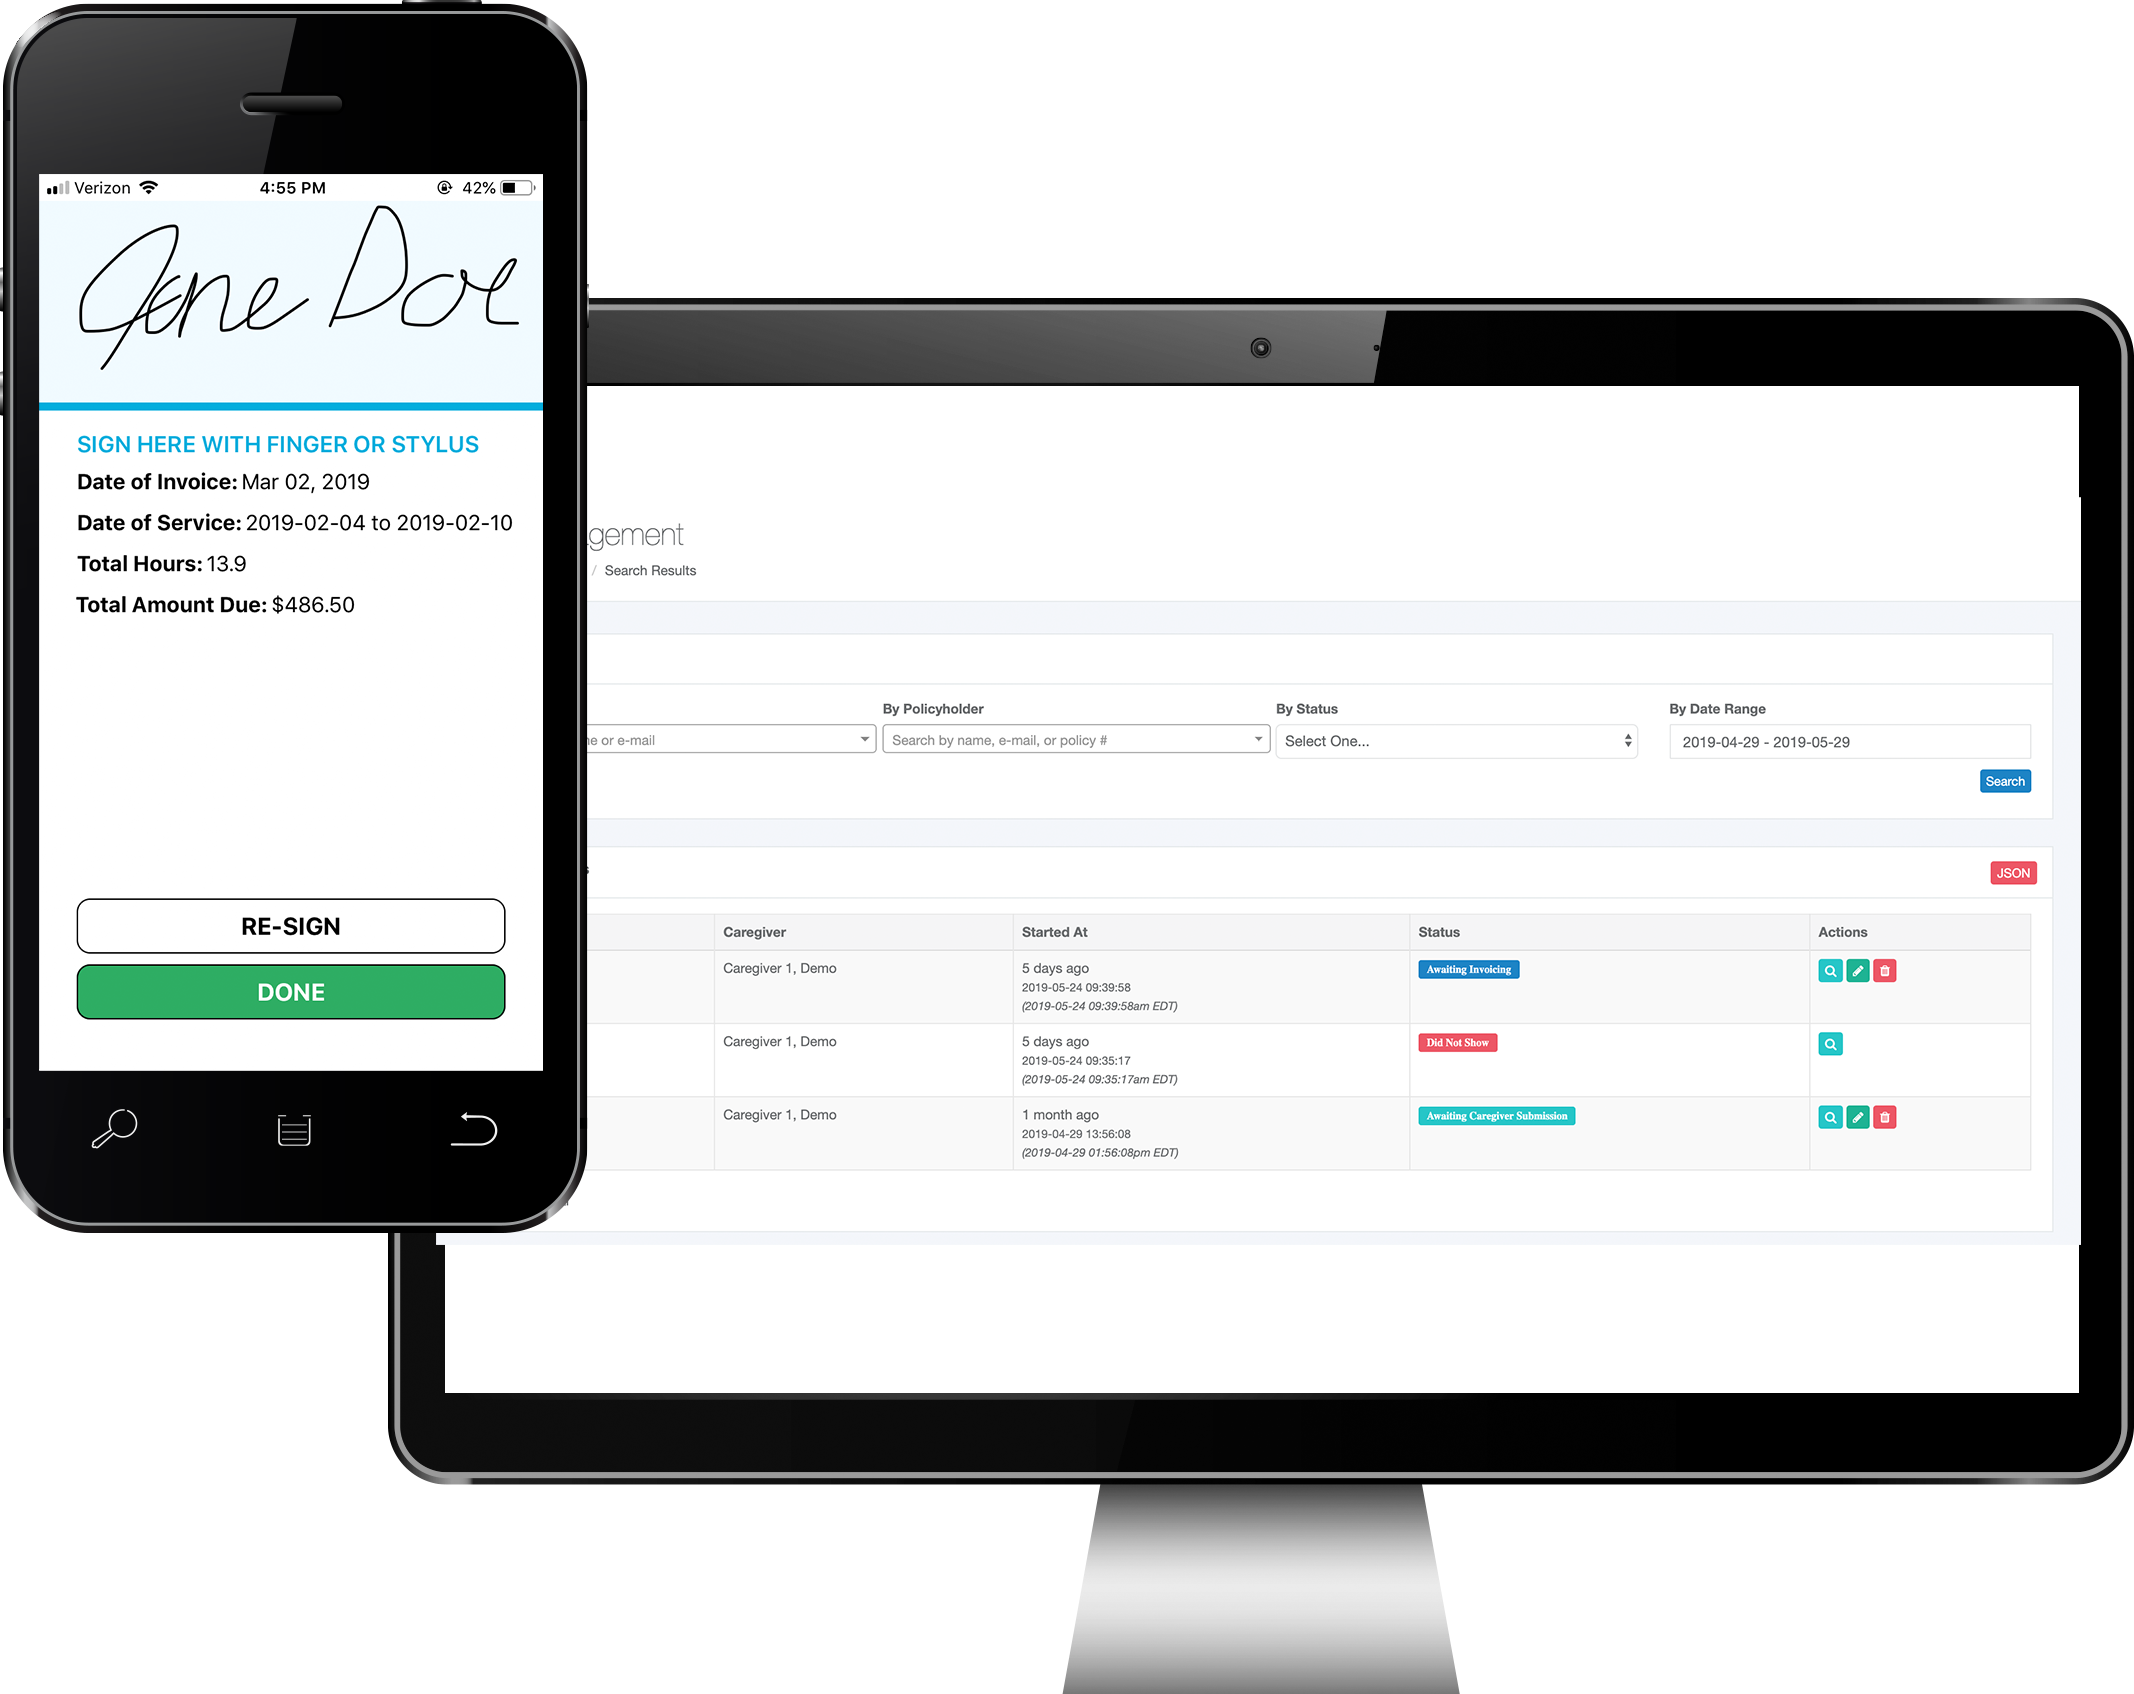 Improved Efficiency - Automated operational support for daily workflows.